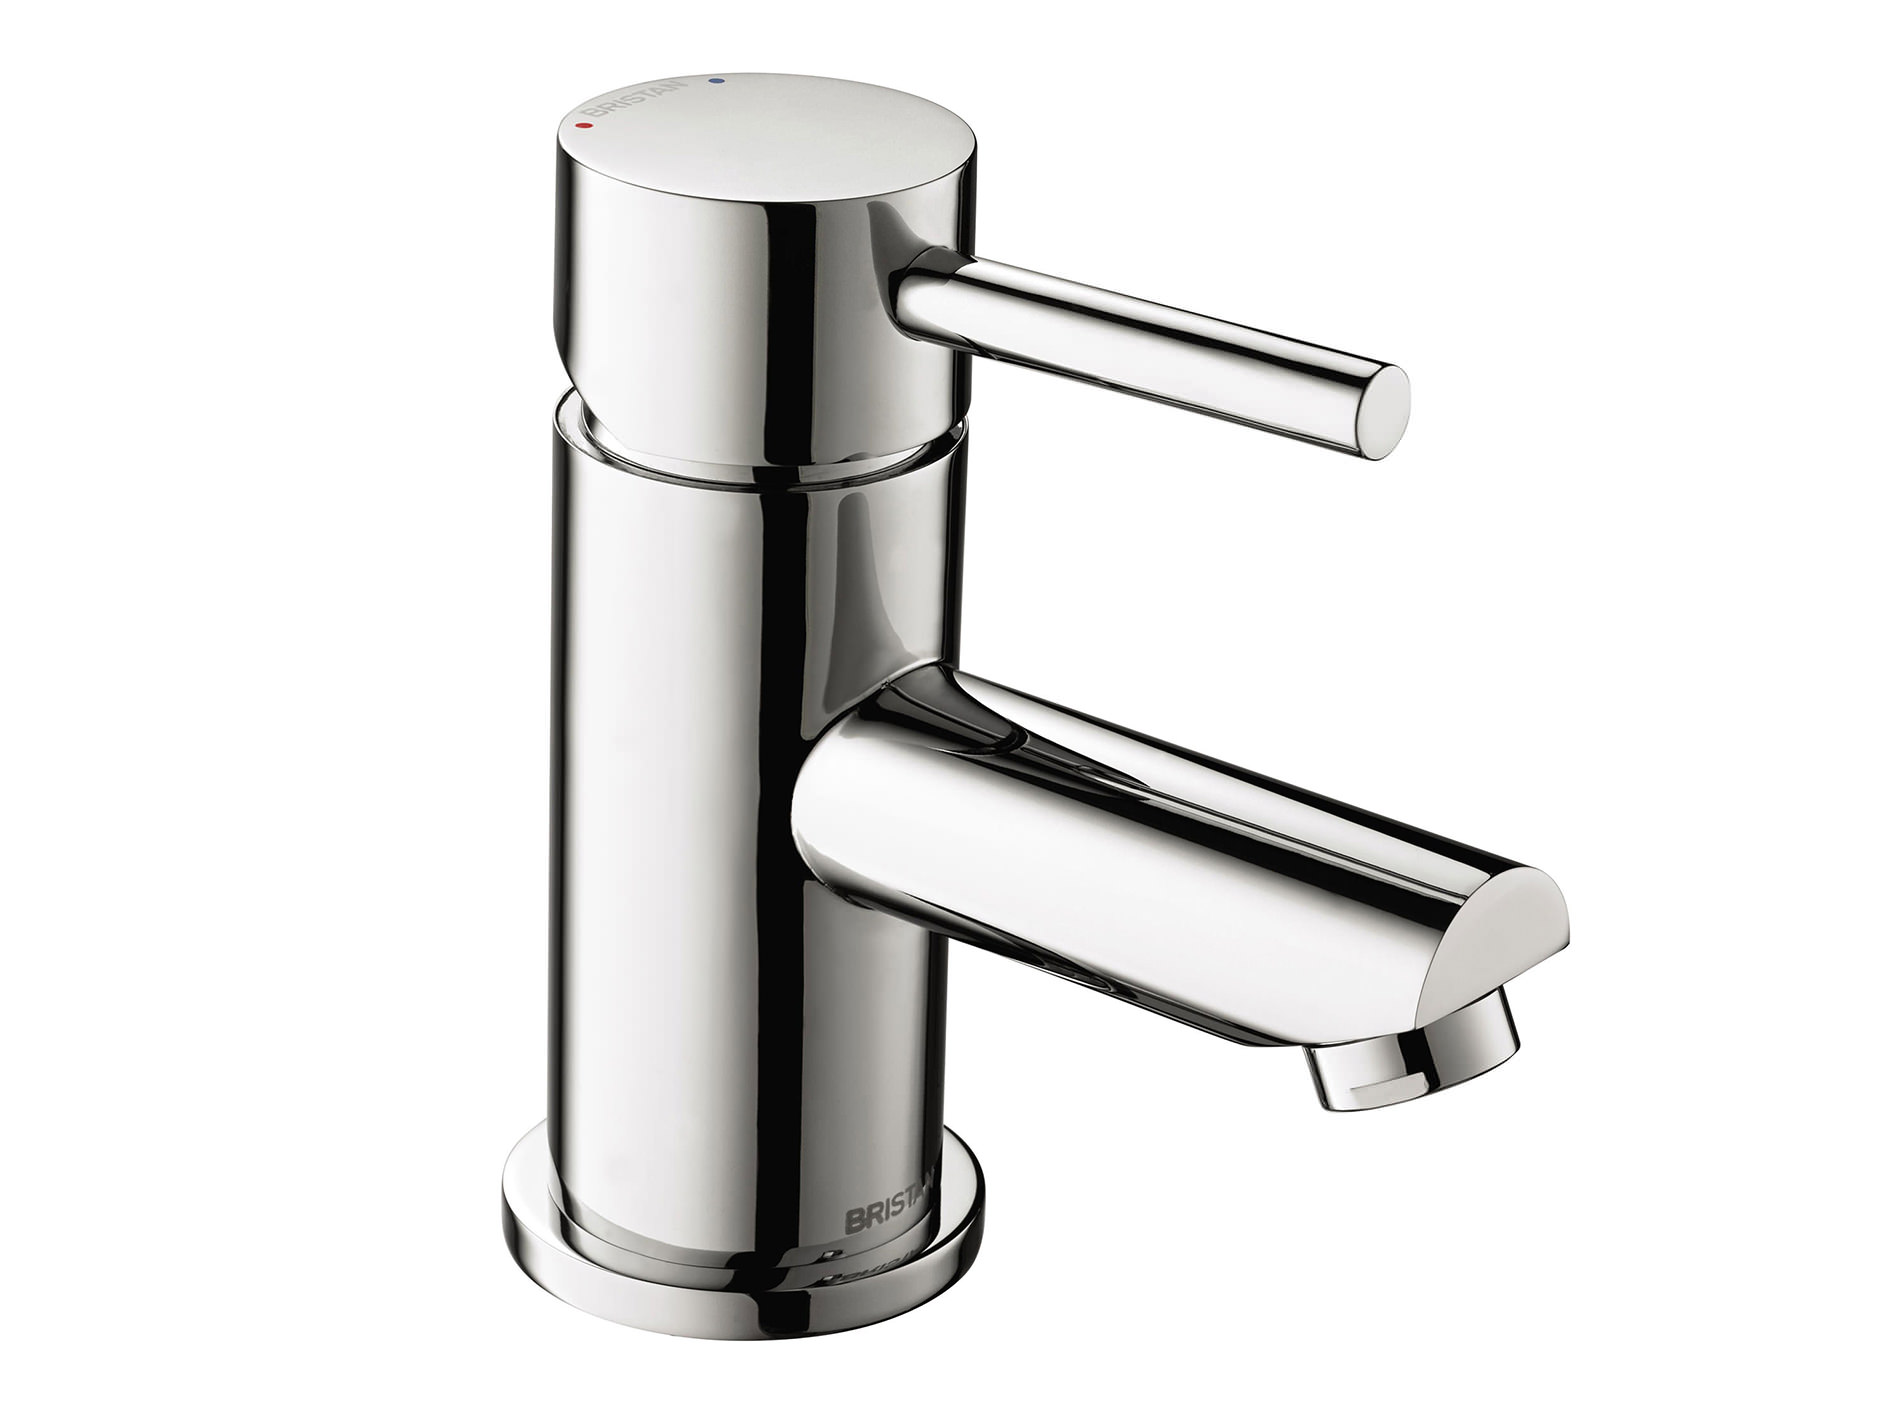 Bristan Blitz Basin Mixer Tap With Clicker Waste - BTZ BAS C